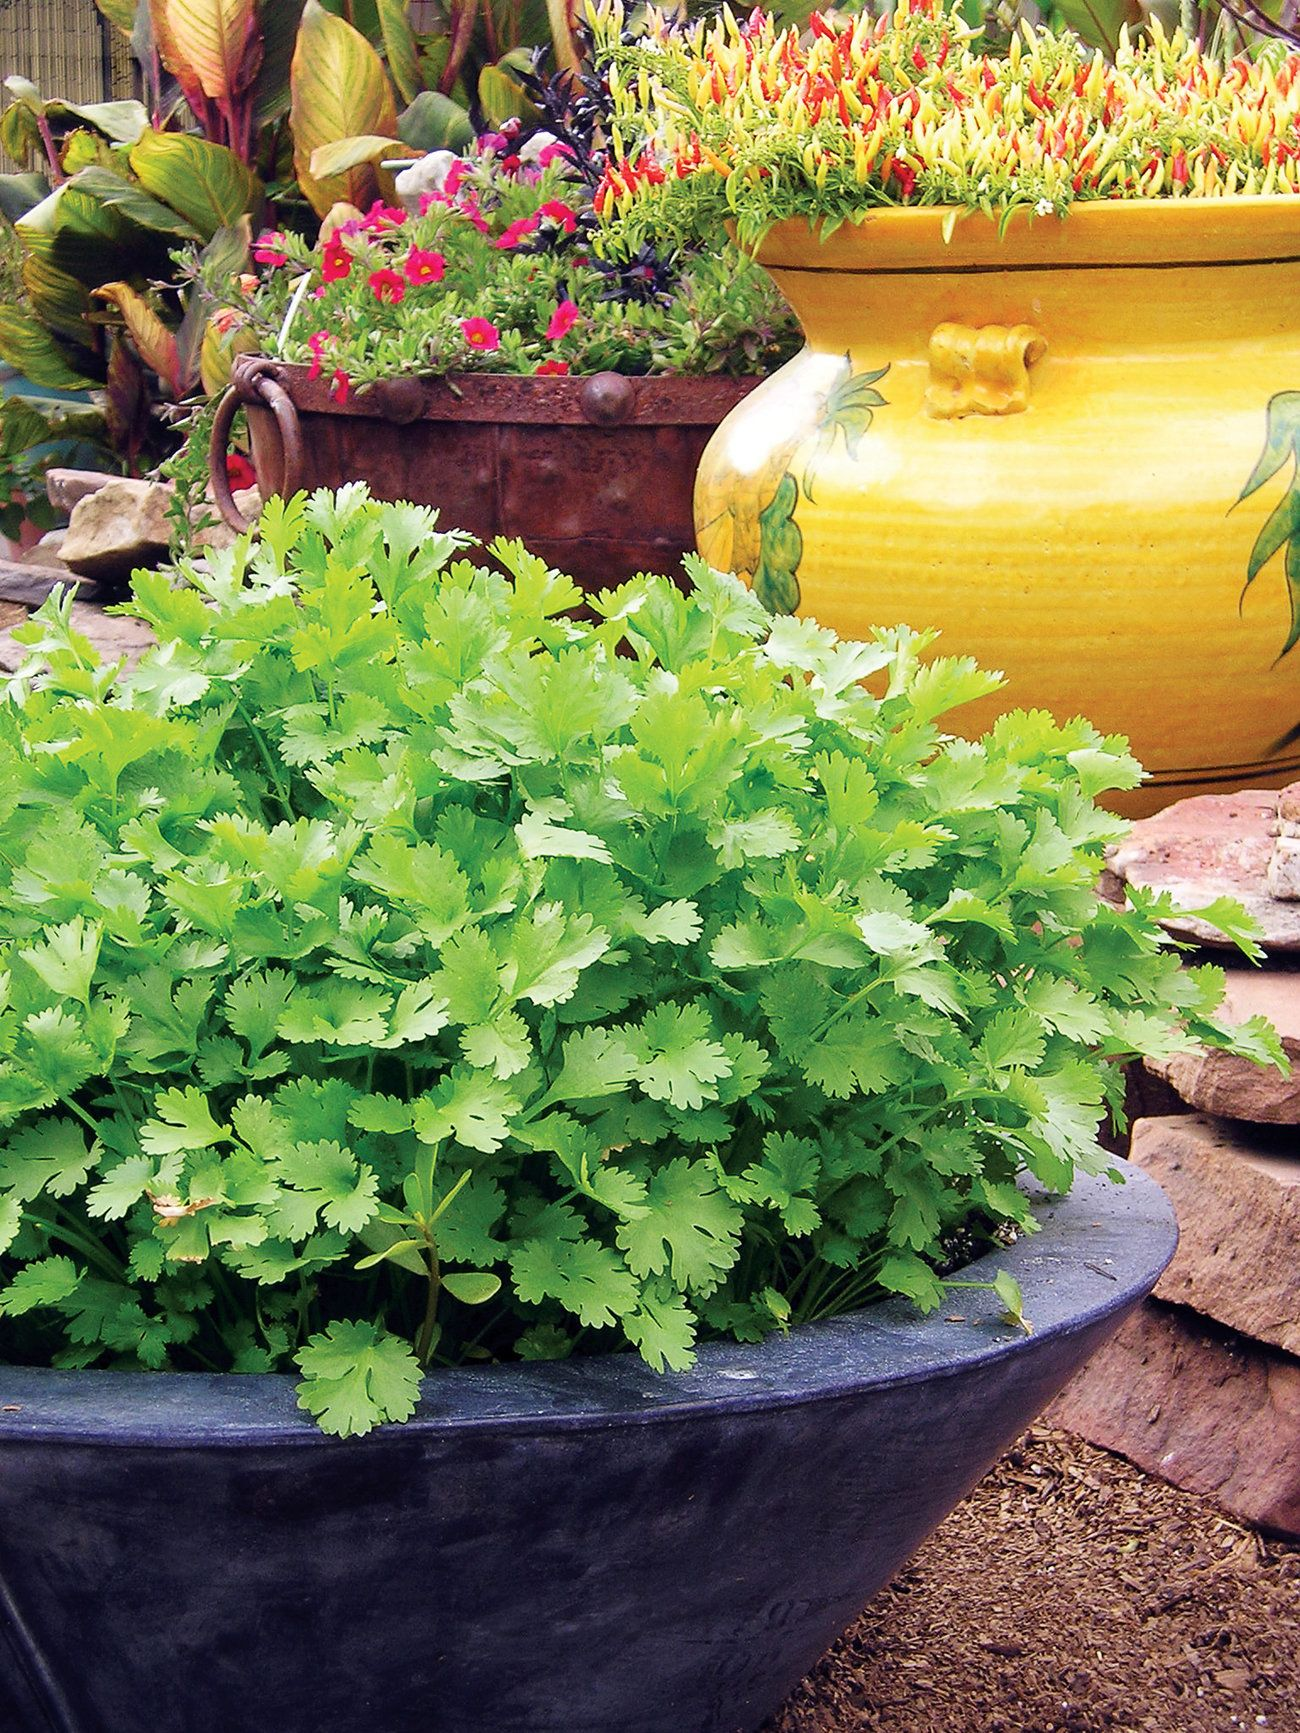 Grow Cilantro the Better Way With Our Clever Growing Guide